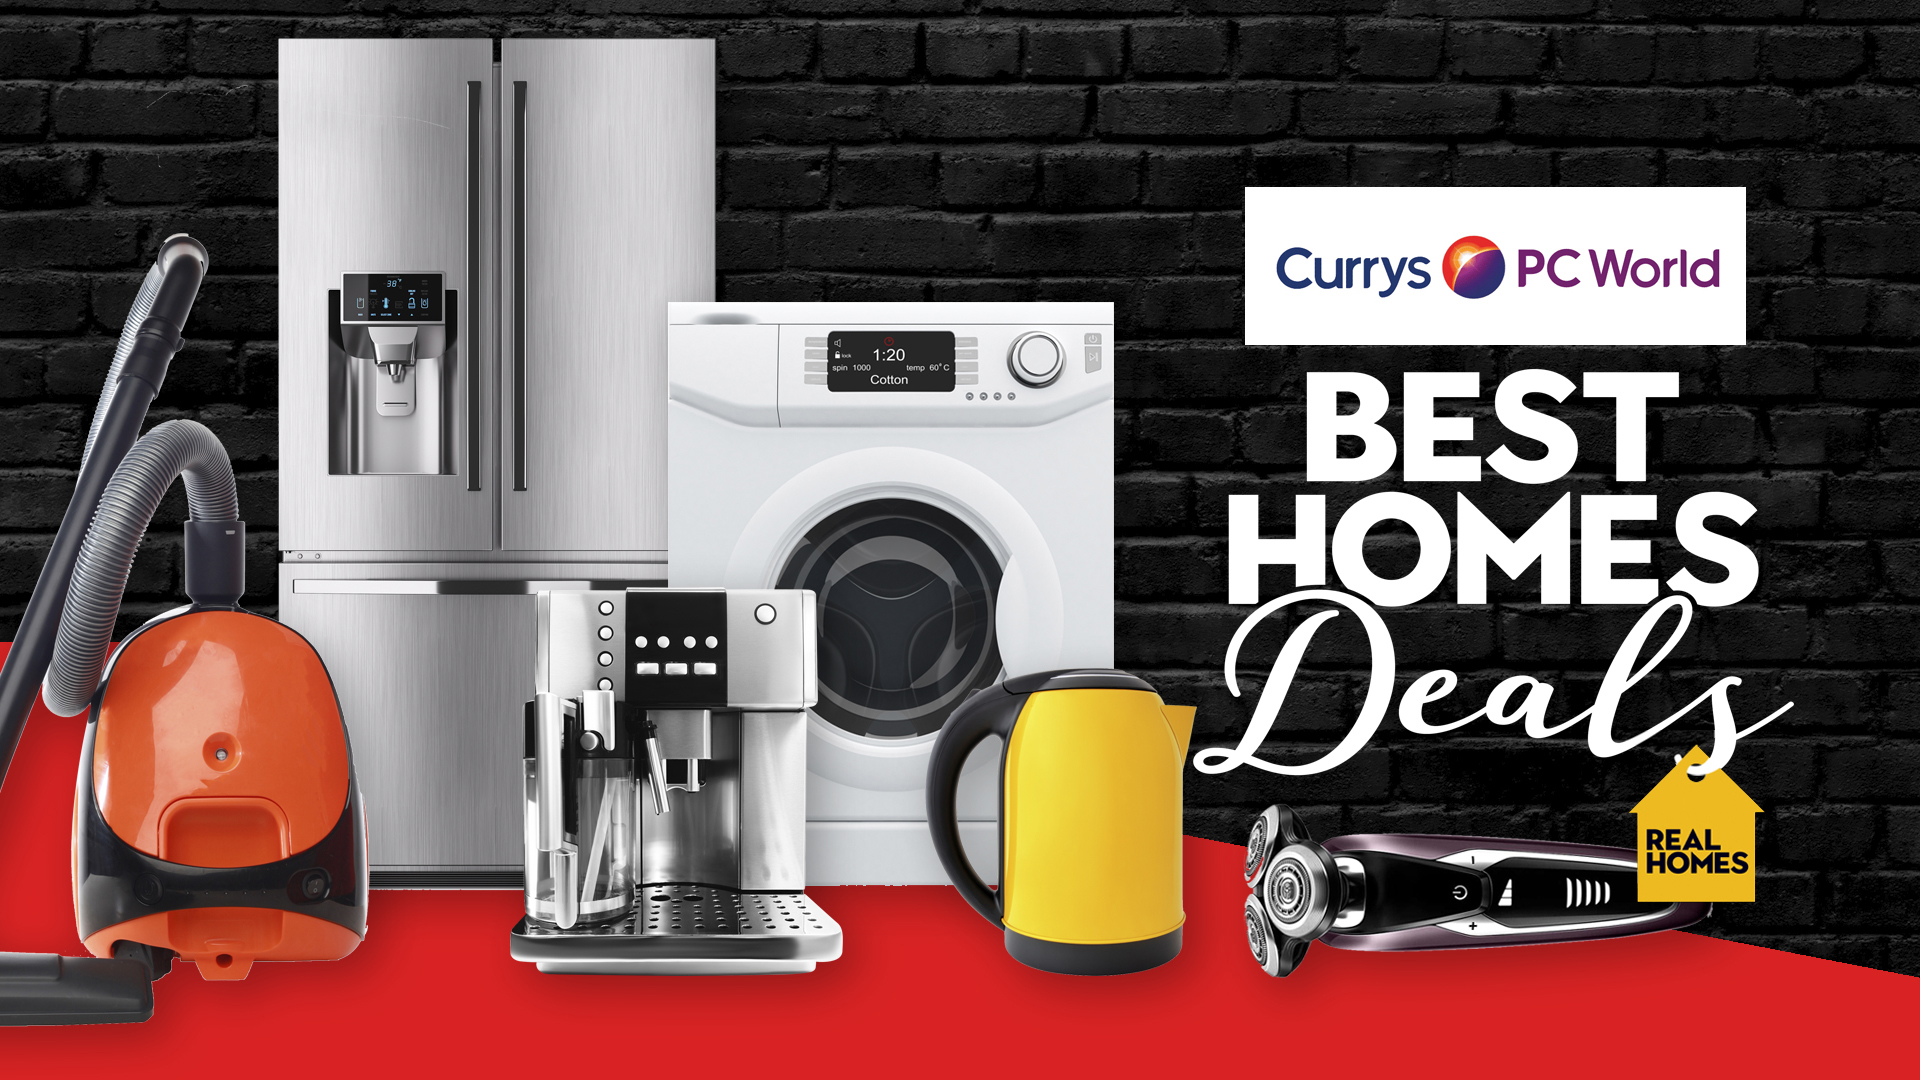 Currys Black Friday 2020 Real Homes